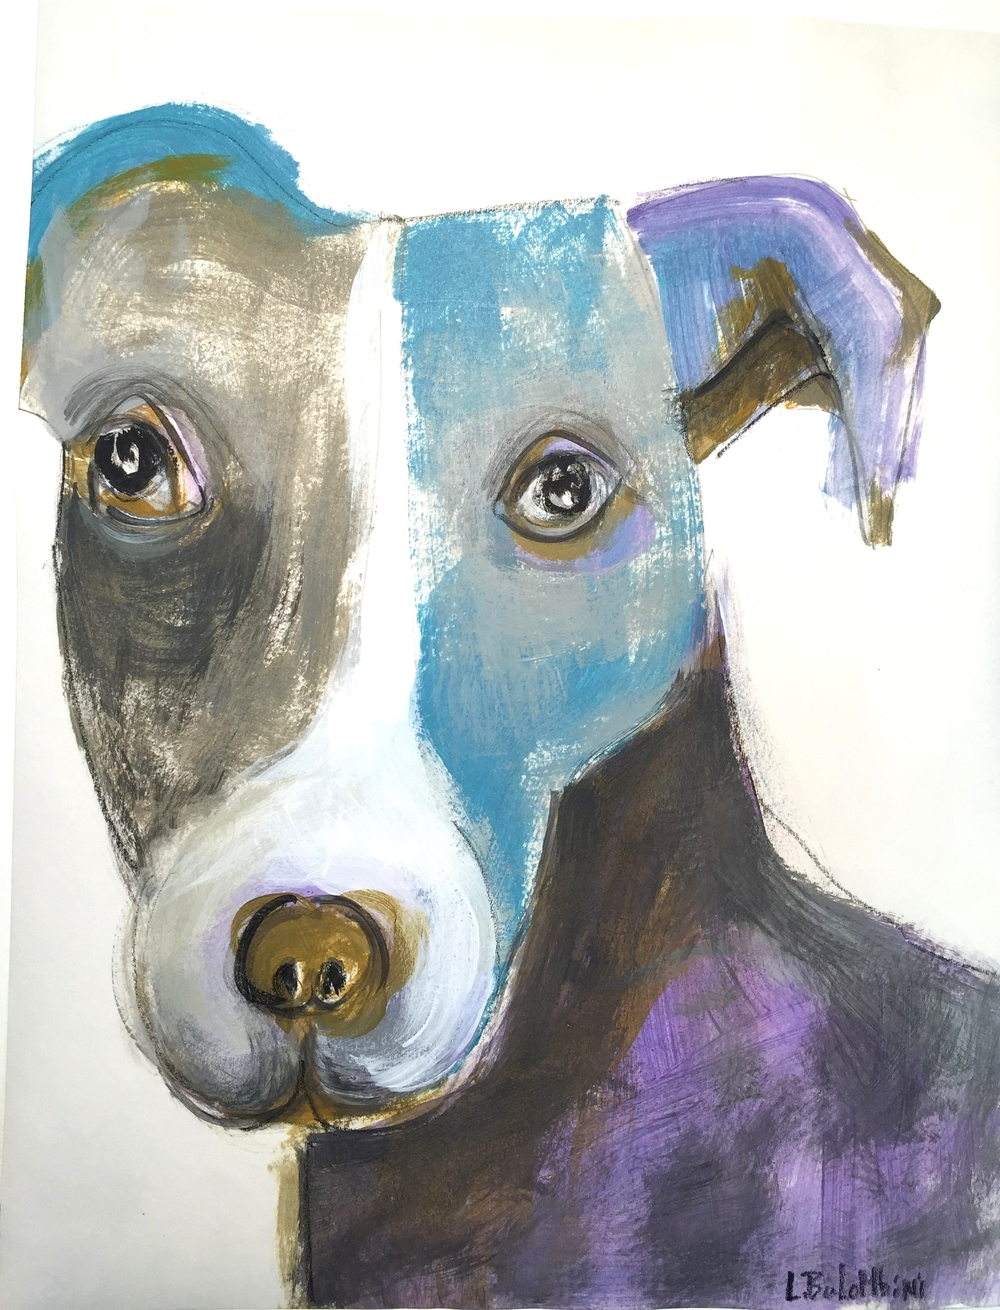 Next door Hound $45.00